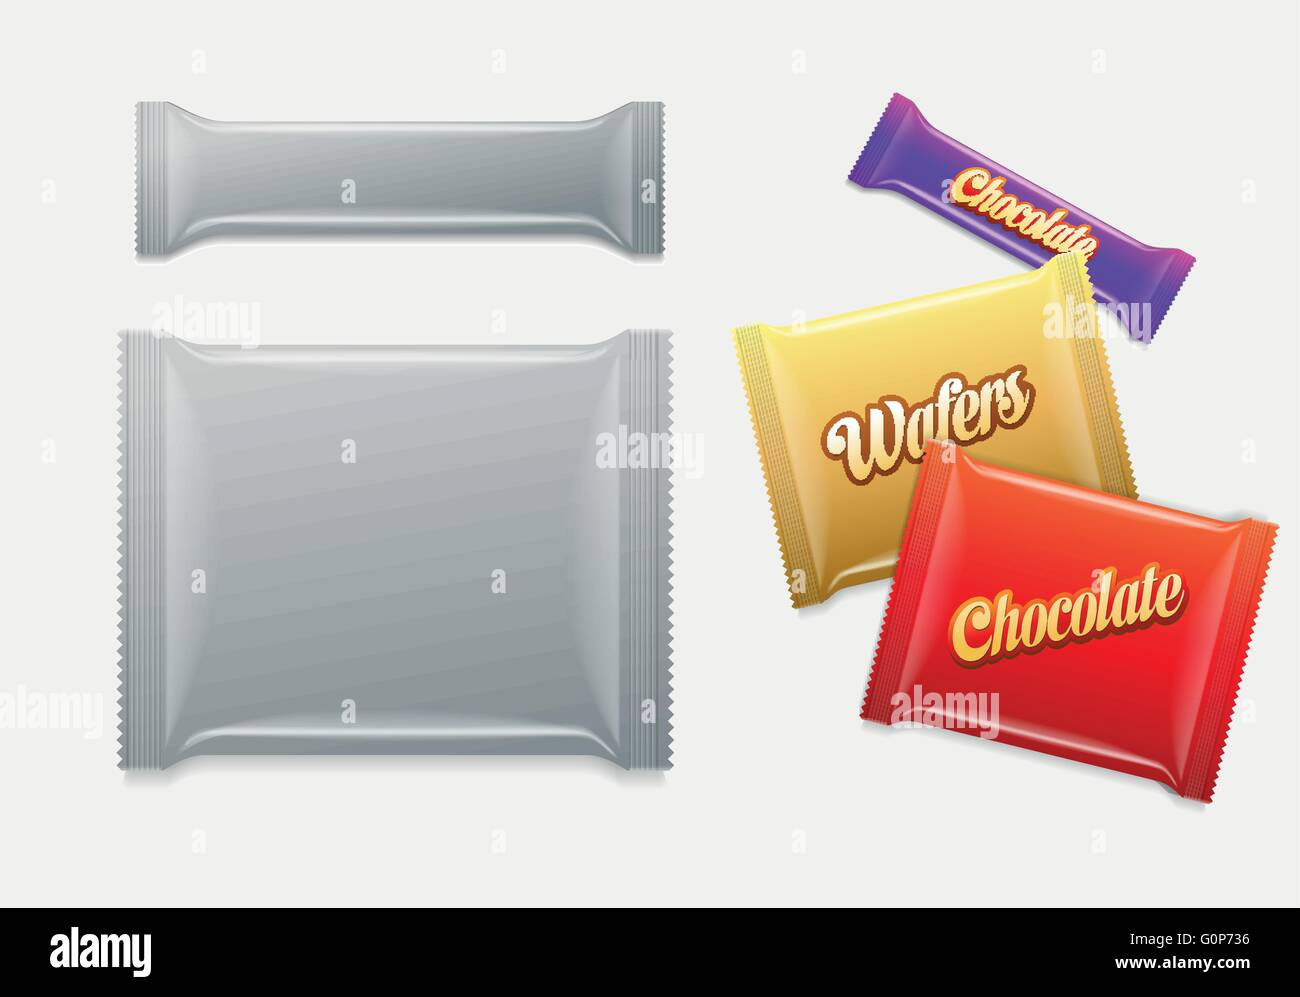 Plastic Package. Chocolate, wafers, sweets or candy pack.  Easy editable. Elements are layered separately. Just - Stock Image